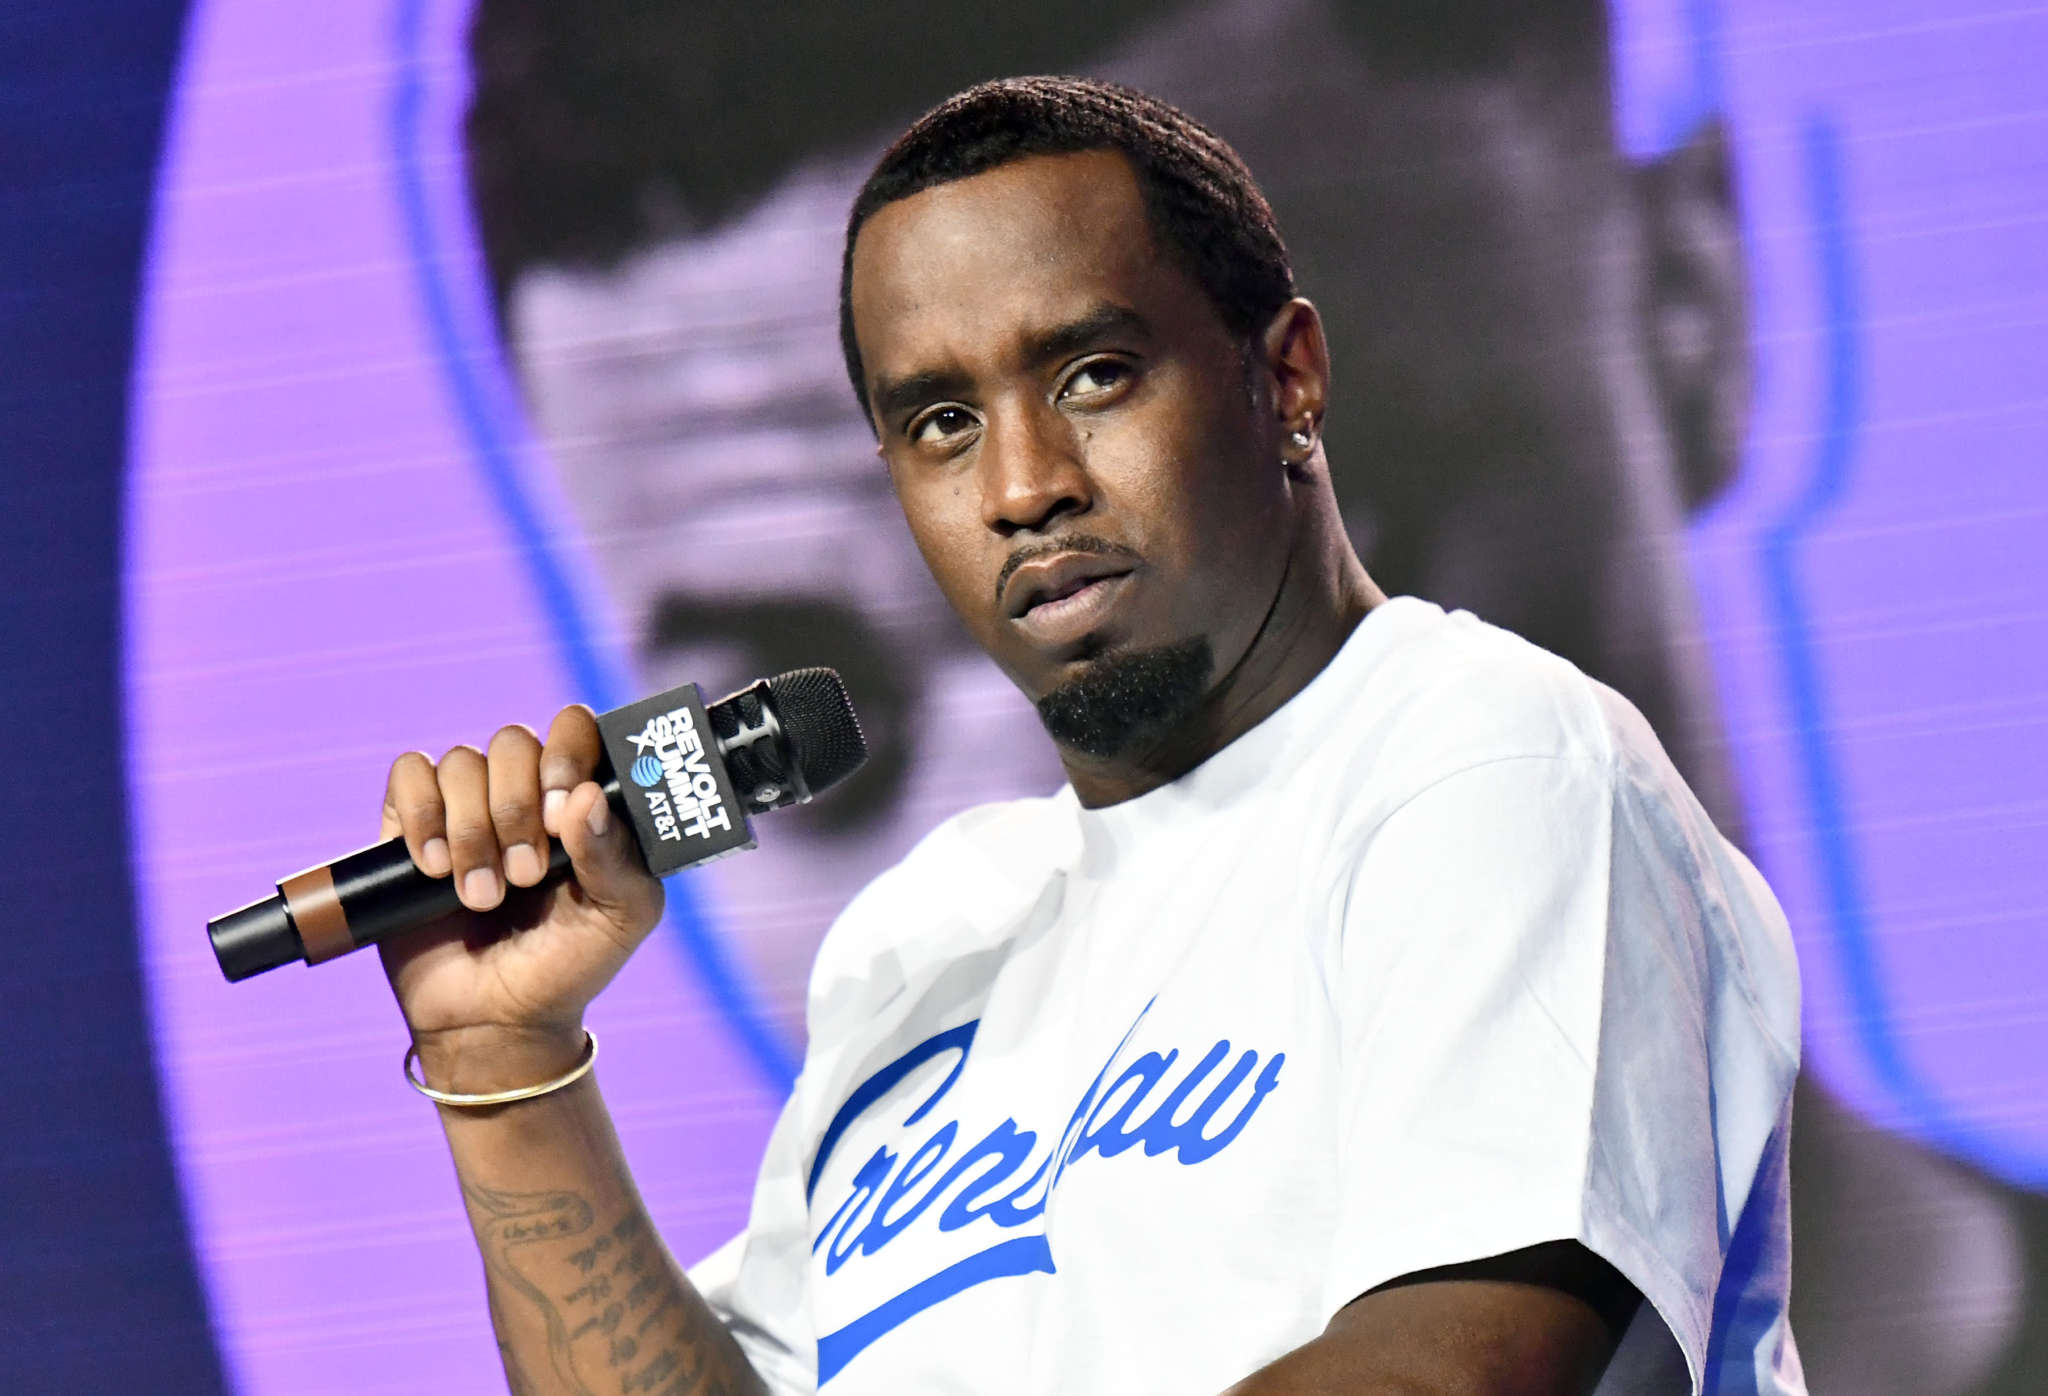 diddy-addresses-portlands-protests-check-out-an-article-posted-on-revolt-tv